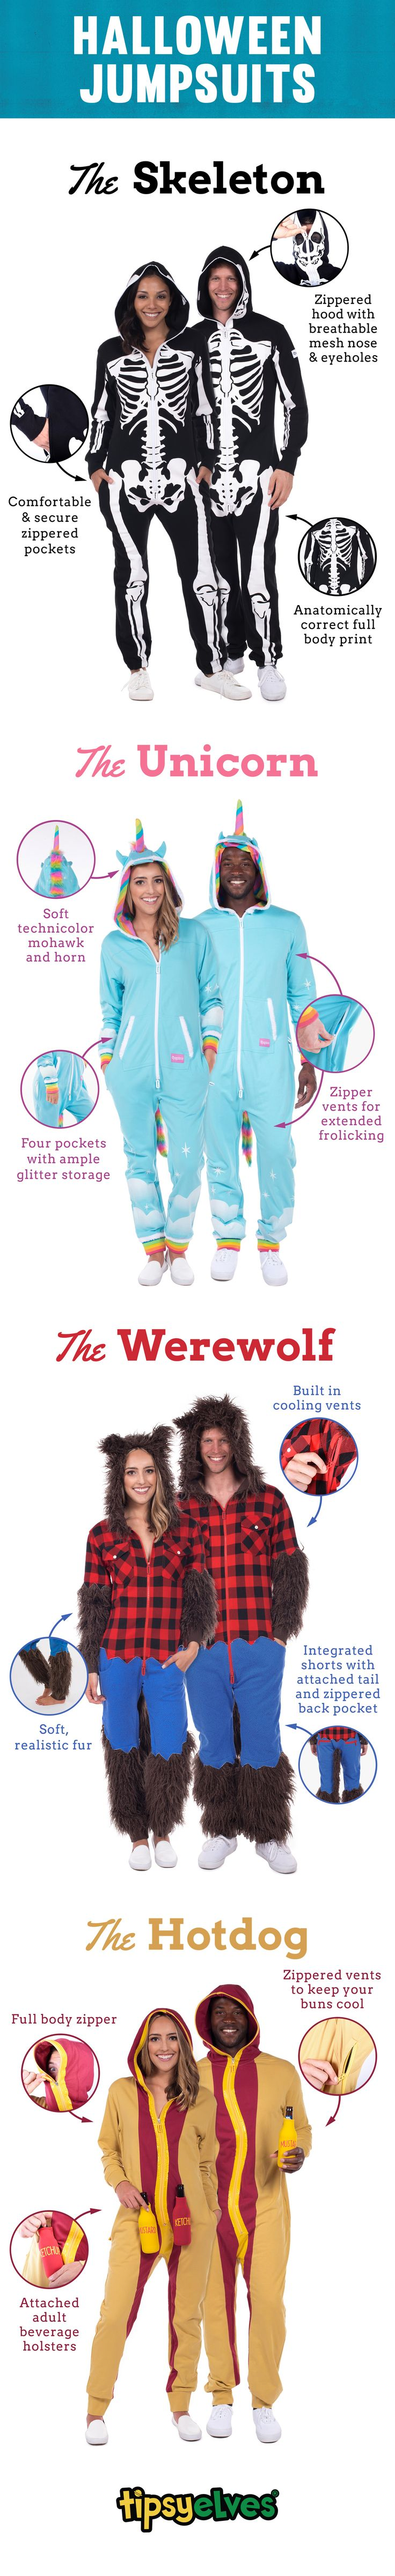 Couples Halloween costumes can be a hassle. You want style; he wants comfort. With Tipsy Elves couples halloween costumes, you'll both find what you're looking for. Say goodbye to dollar store couples Halloween costumes and hello to Tipsy Elves apparel. High-quality, stylish, and above all, FUN! Shop over 20 couple's Halloween costumes!